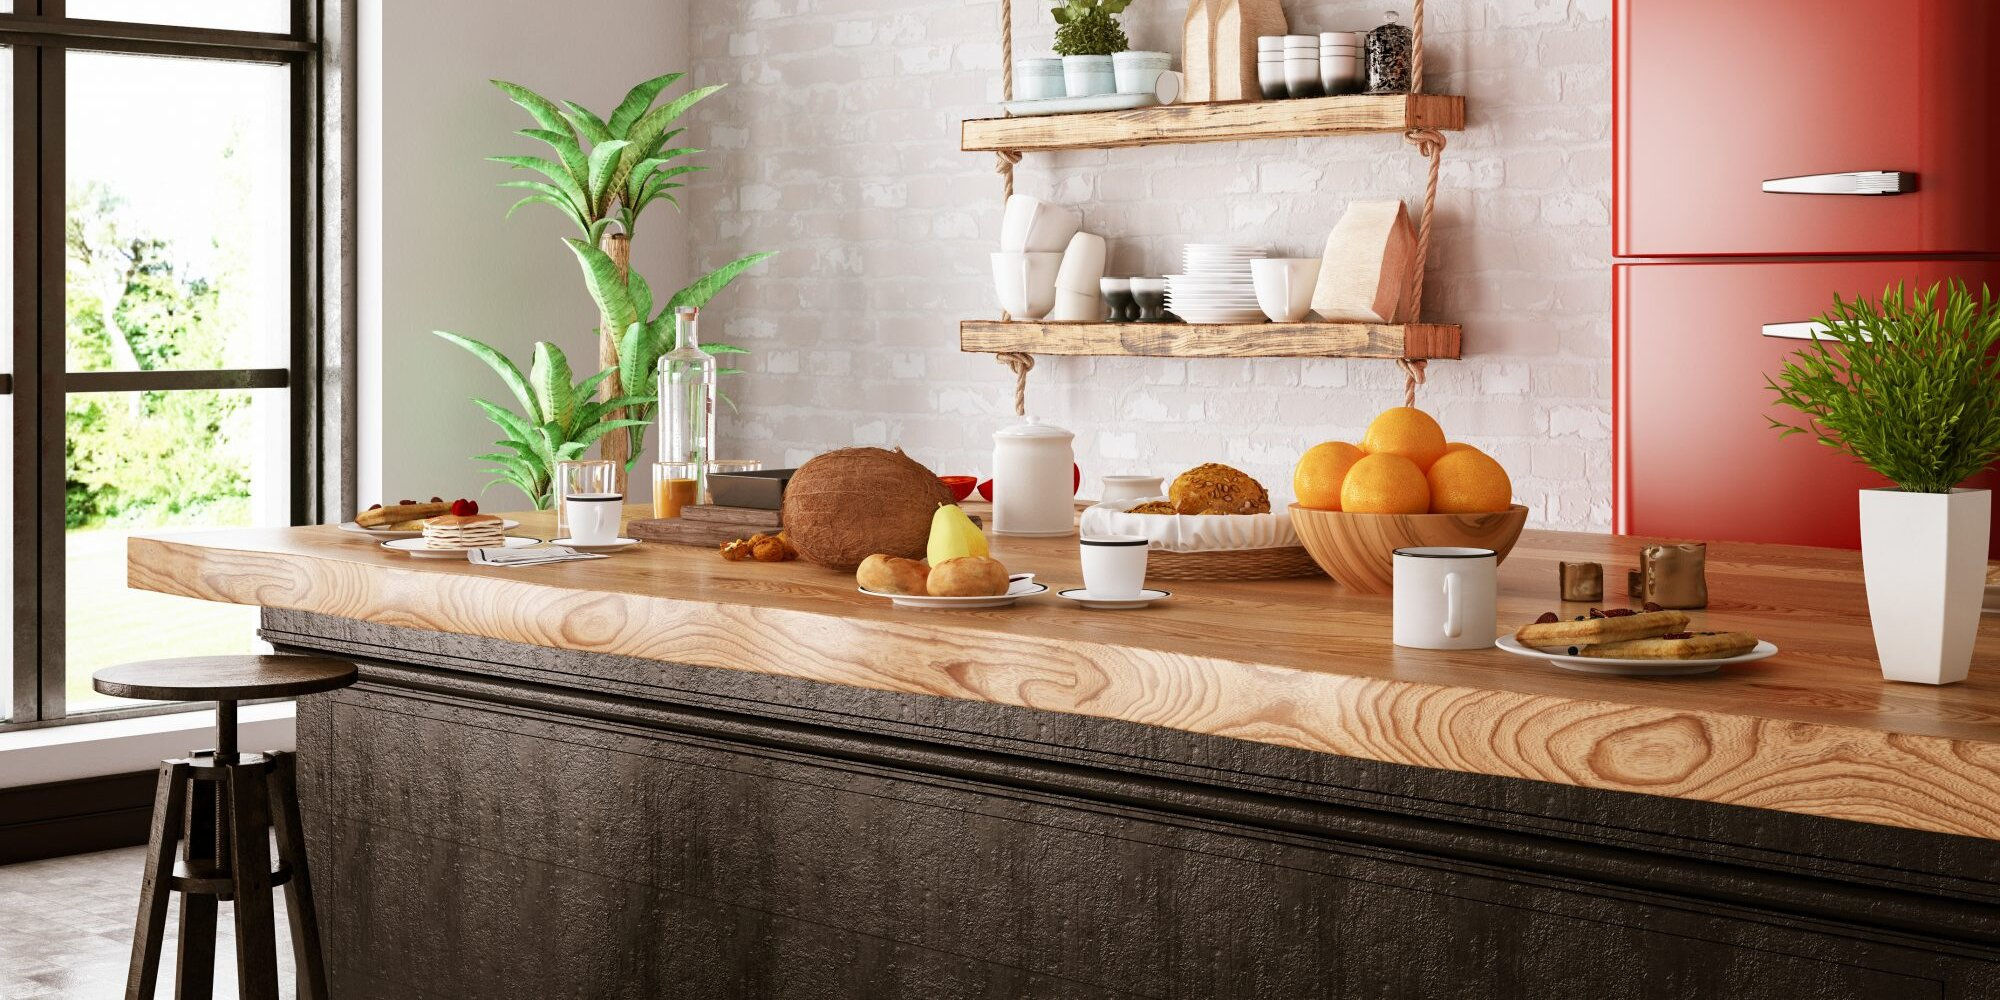 9 Types of Countertops You Should Consider for Your Next Kitchen ...